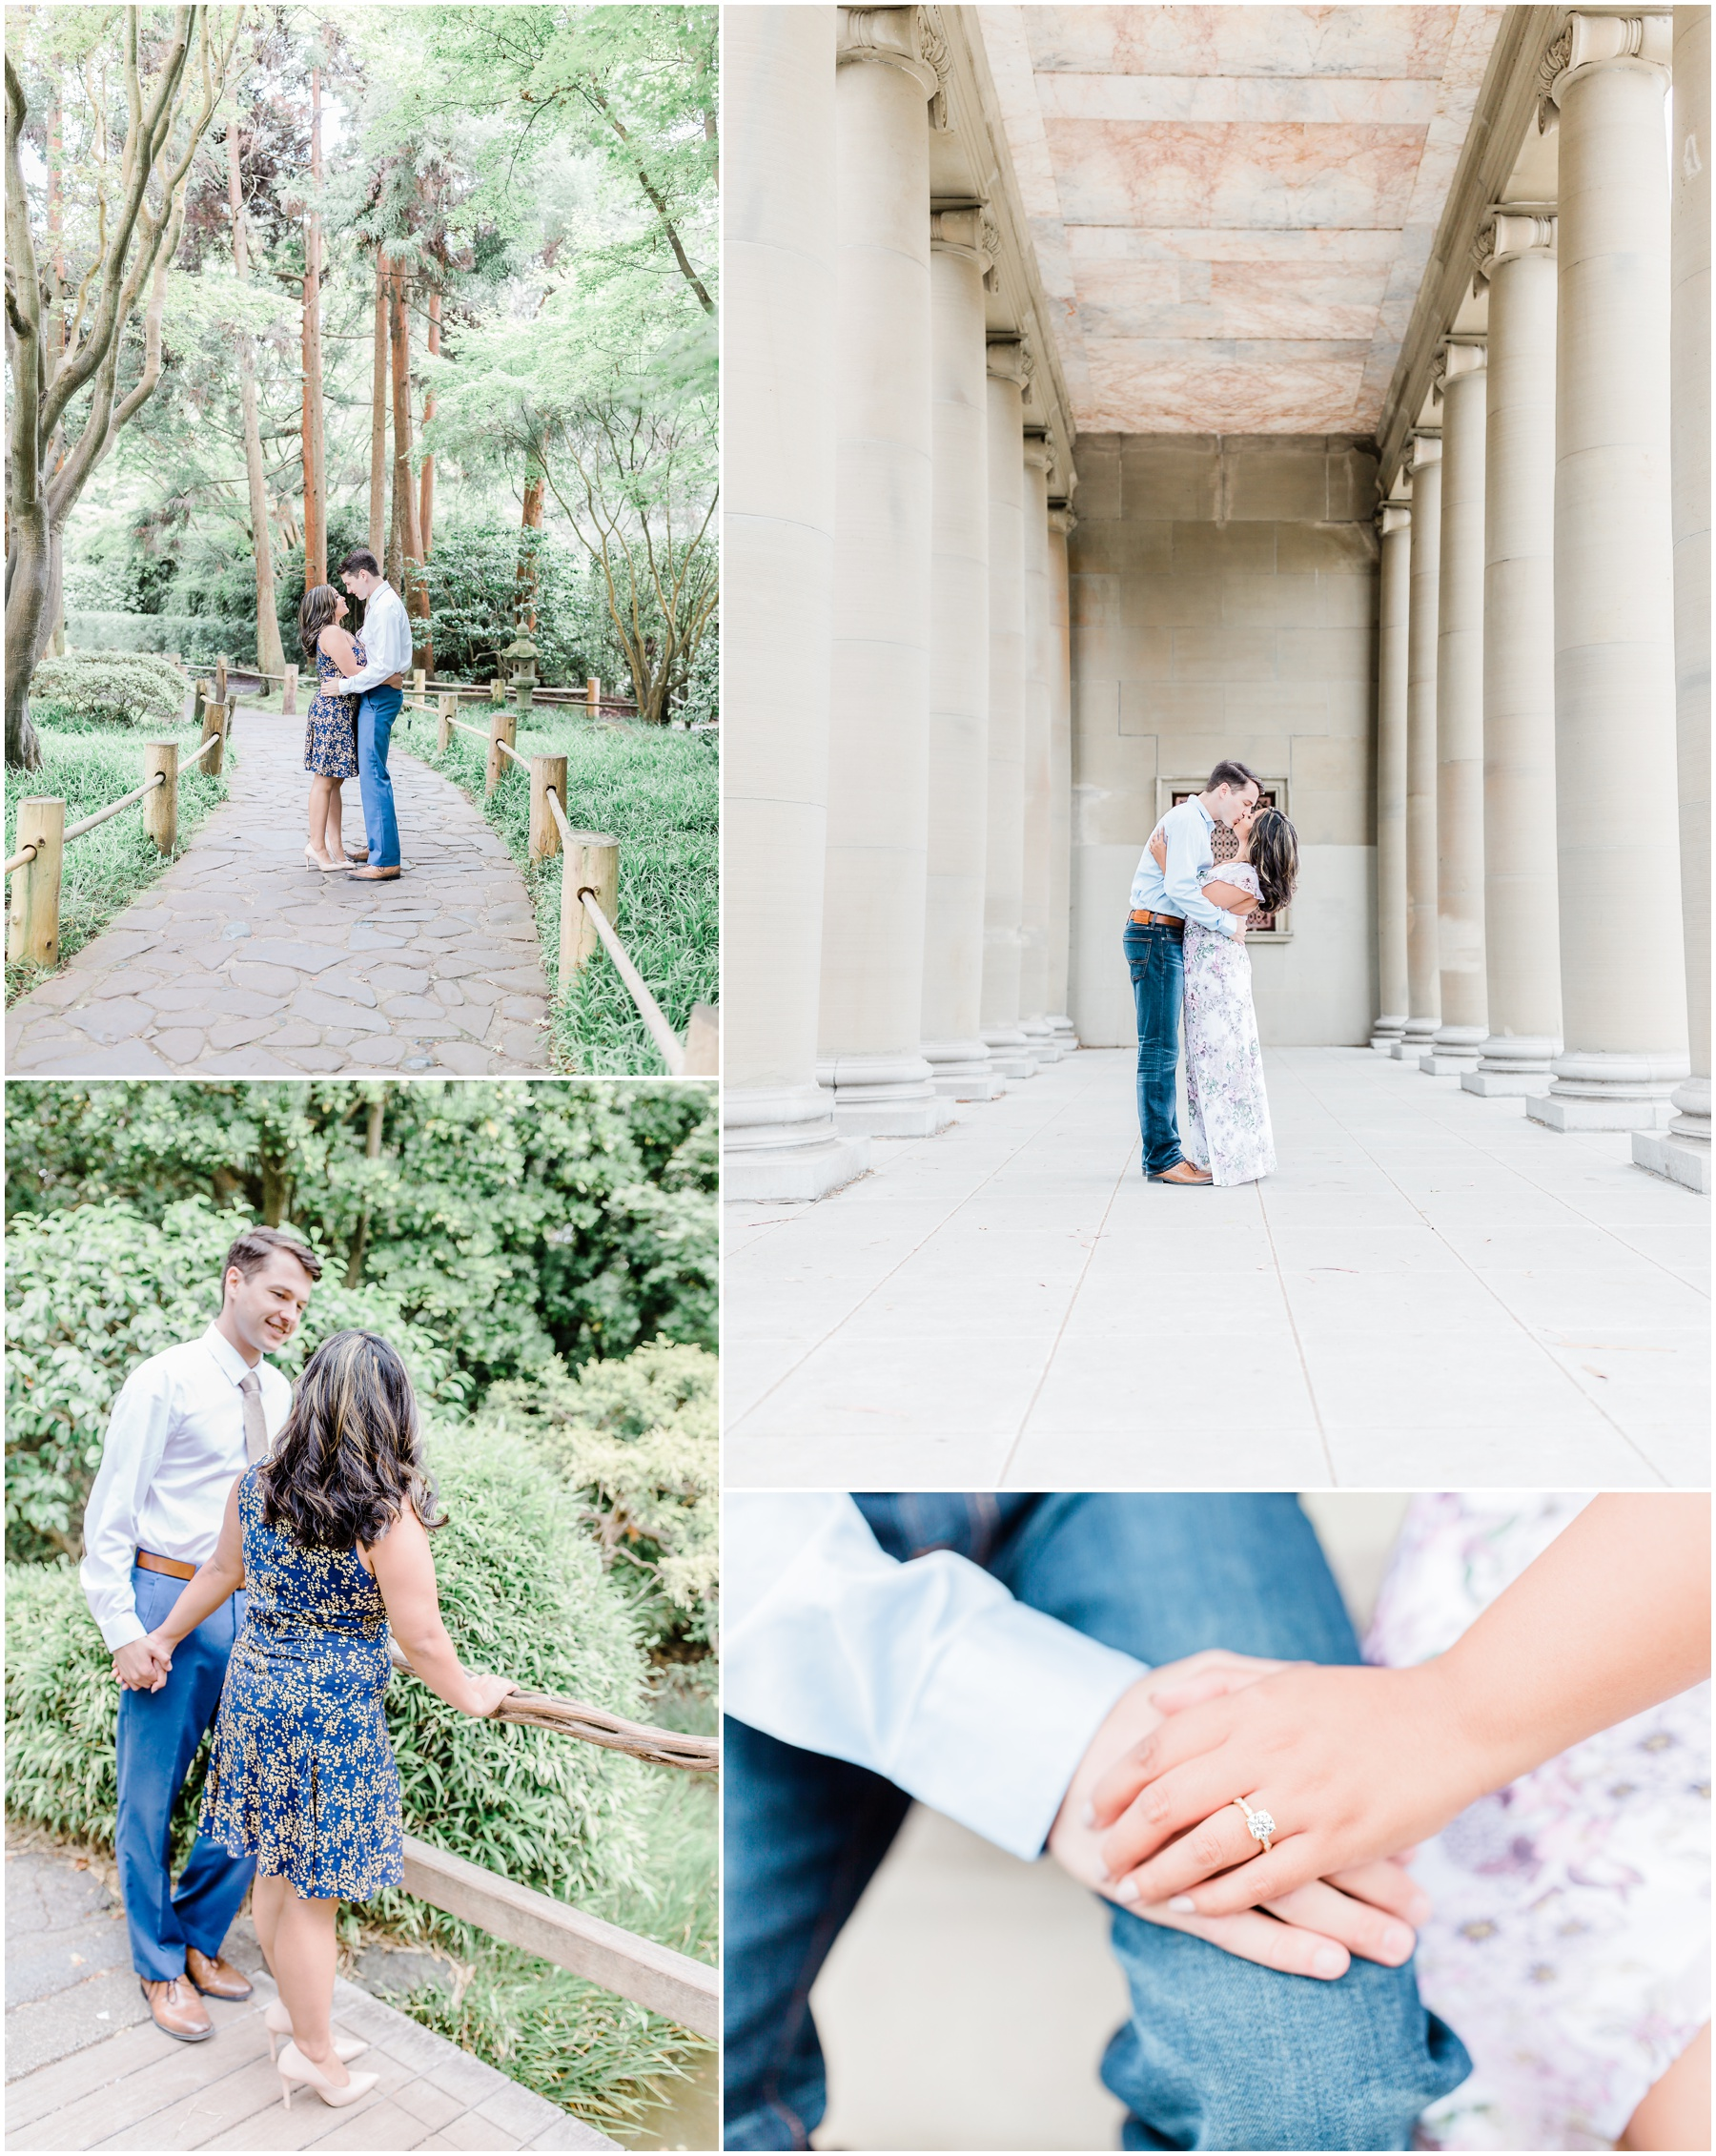 San Francisco Engagement Portrait Session by KCM Photography, a Portrait and Wedding Photographer based in Lodi, CA. The engaged couple are pictured standing amongst the greenery and architecture of Golden Gate Park and the Japanese Tea Garden.